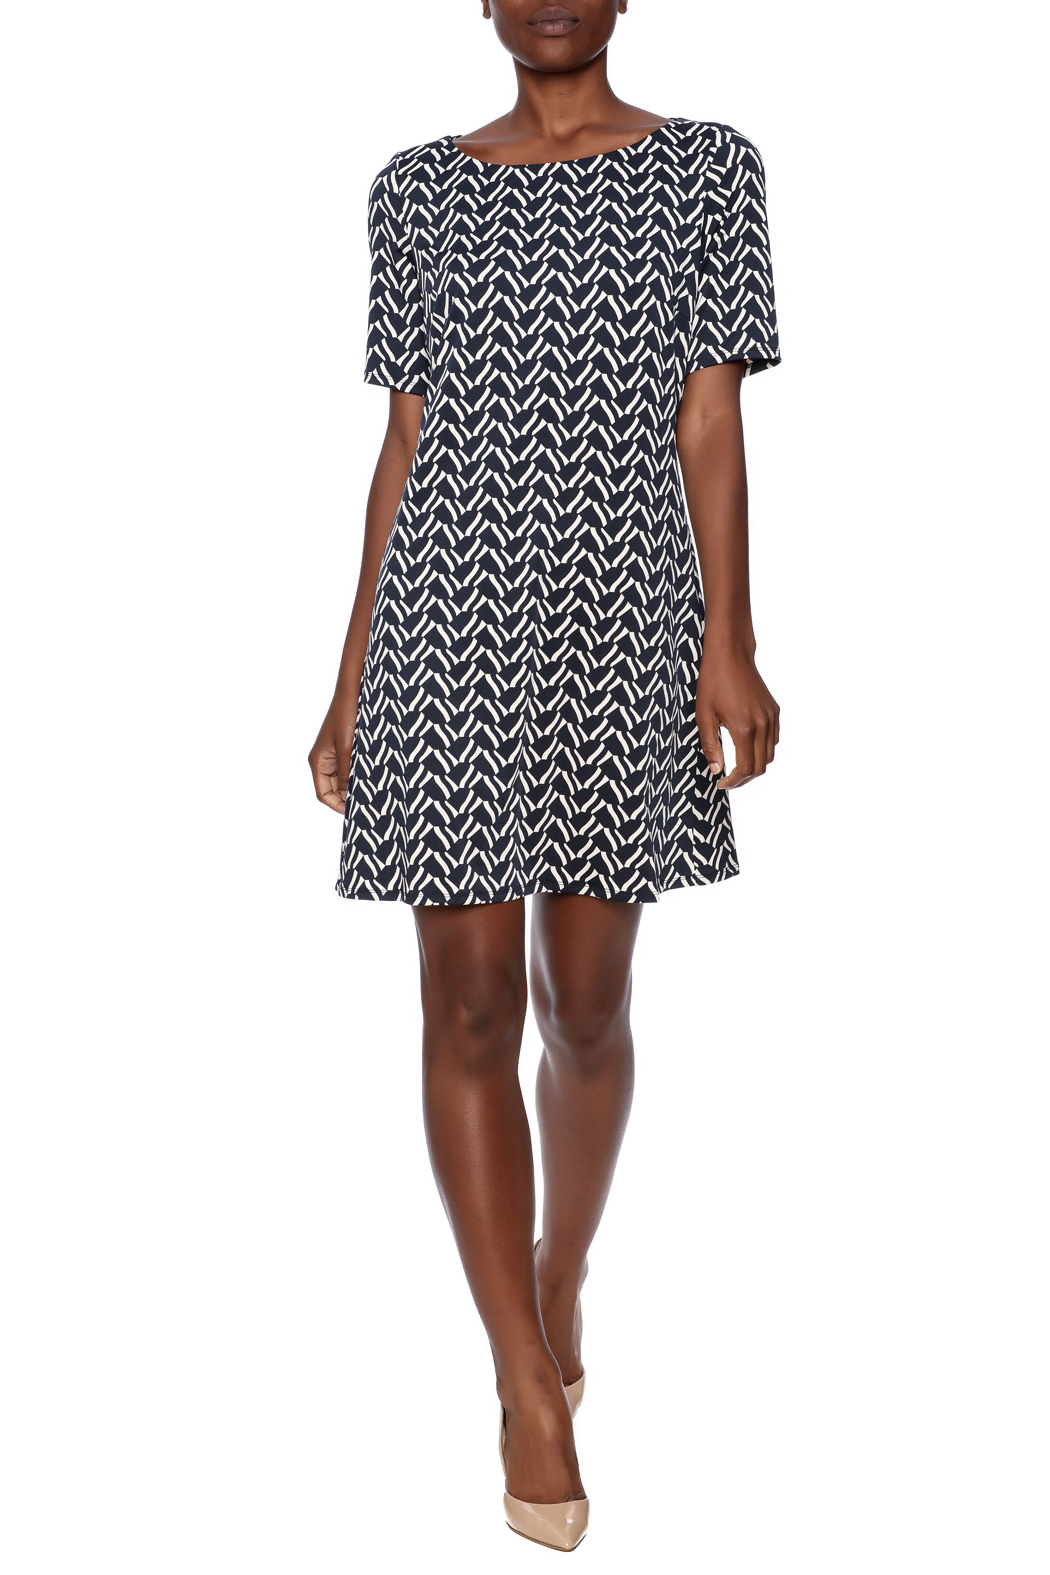 Julie Brown NYC Short Sleeve Dress - Front Full Image